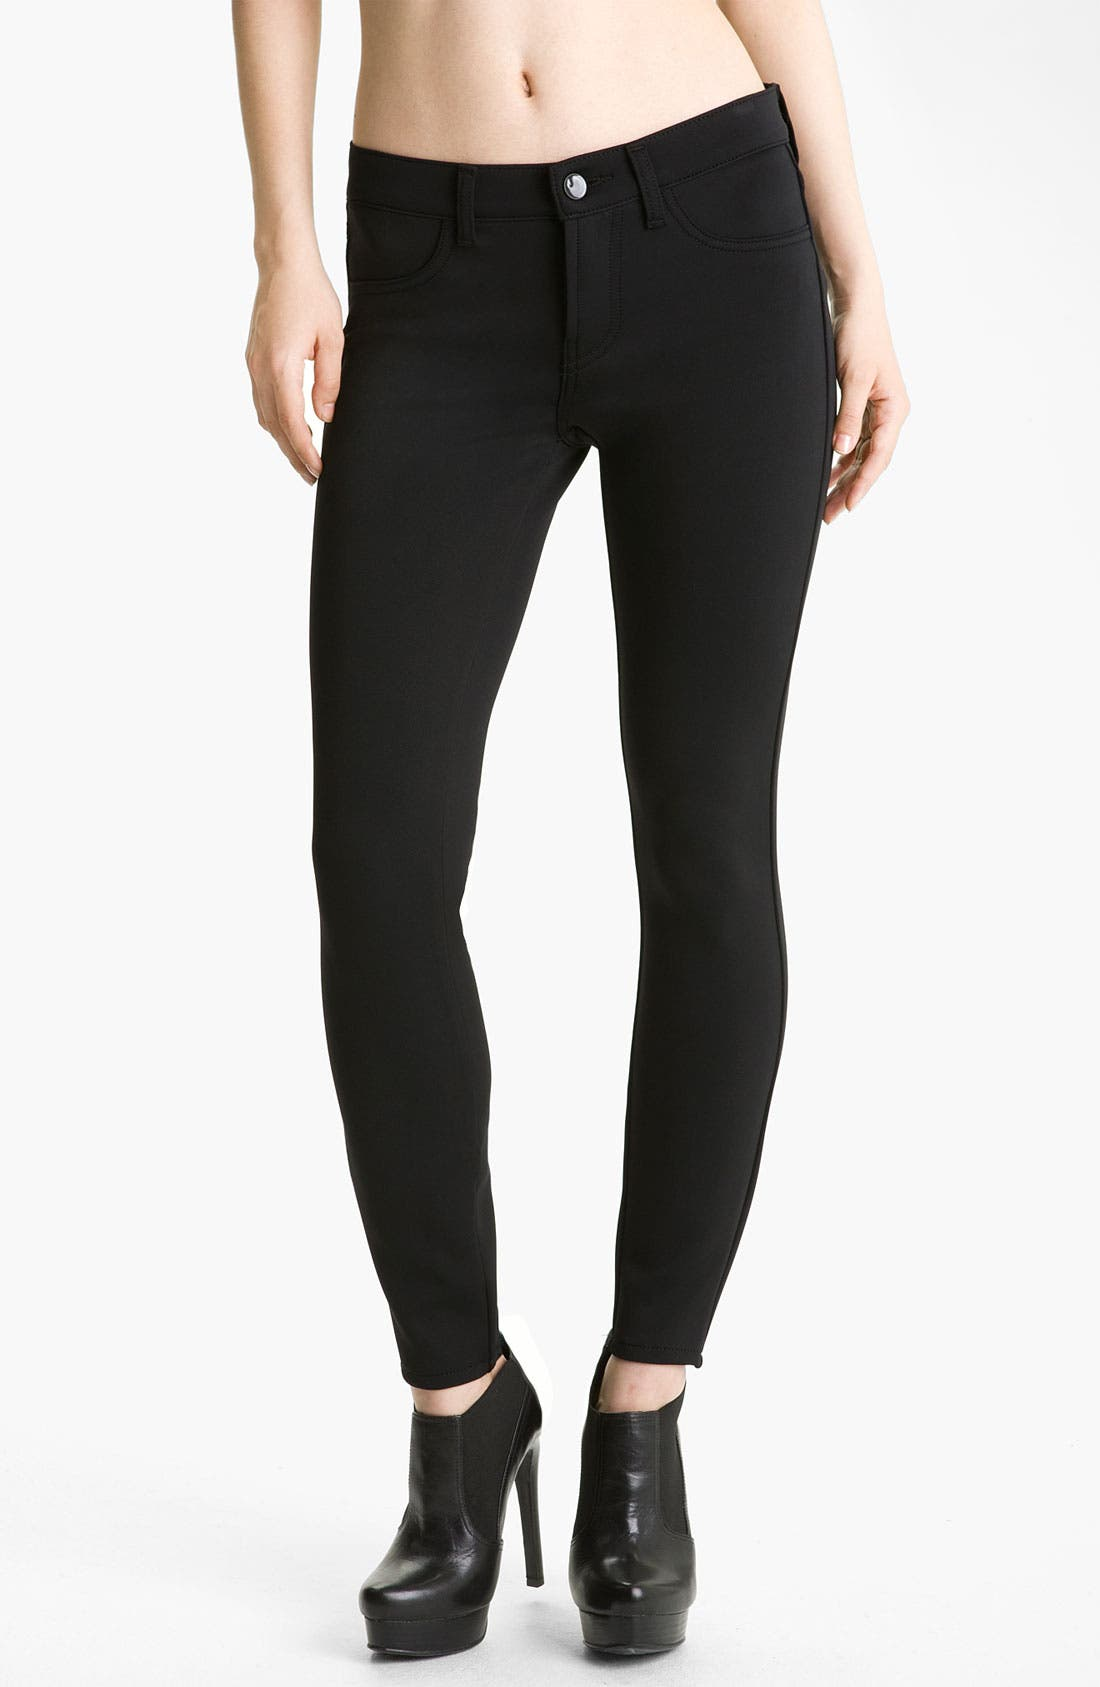 Alternate Image 1 Selected - J Brand '815' Stretch Skinny Pants